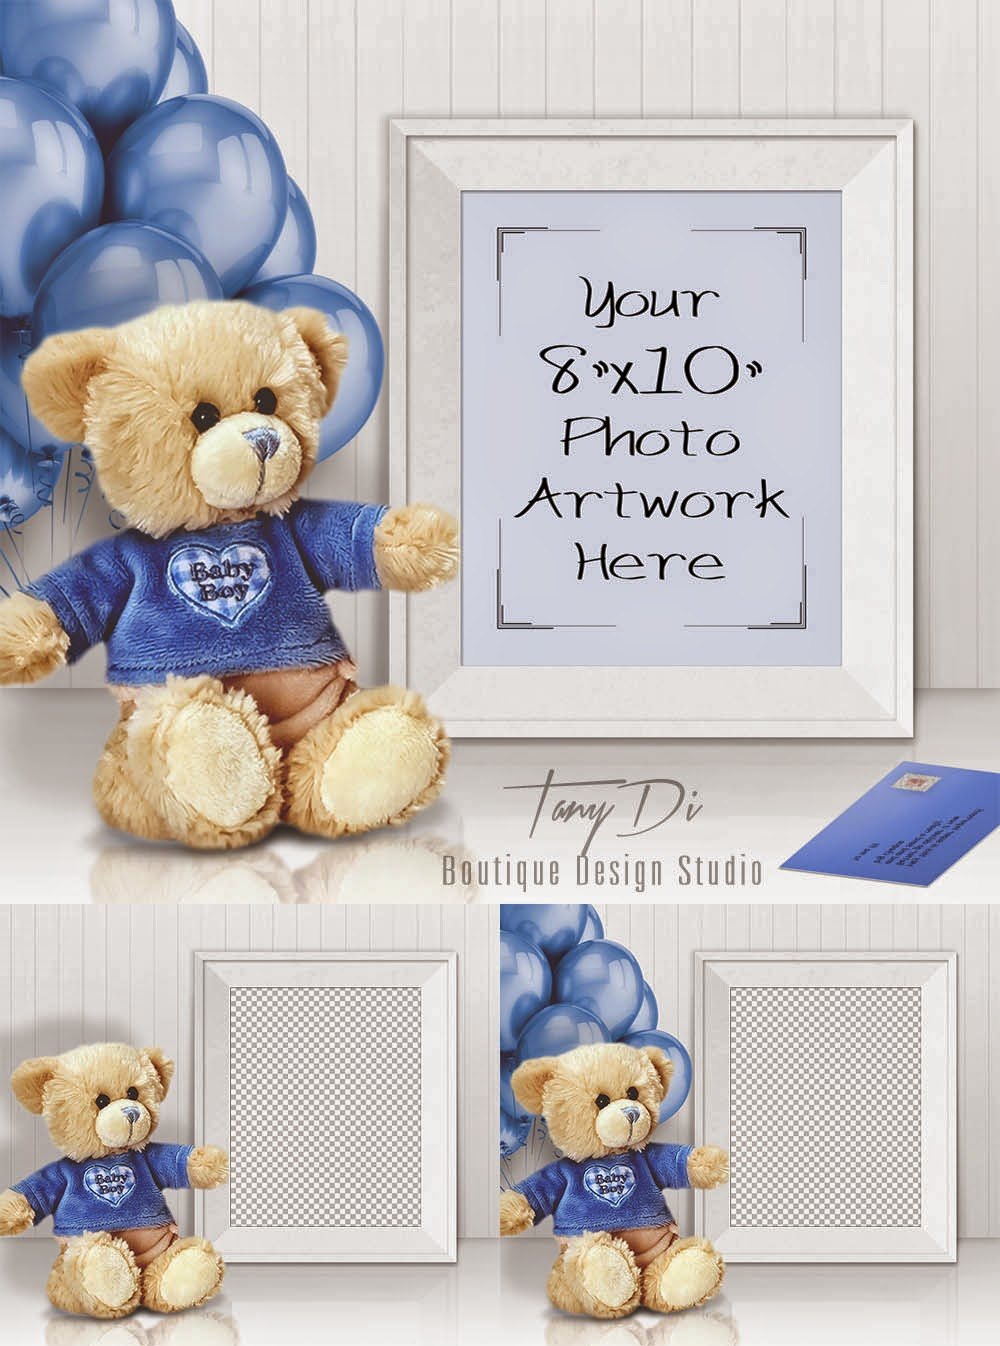 8x10 Portrait White Frame Mock Up Baby Boy Teddy Bear Etsy Shop